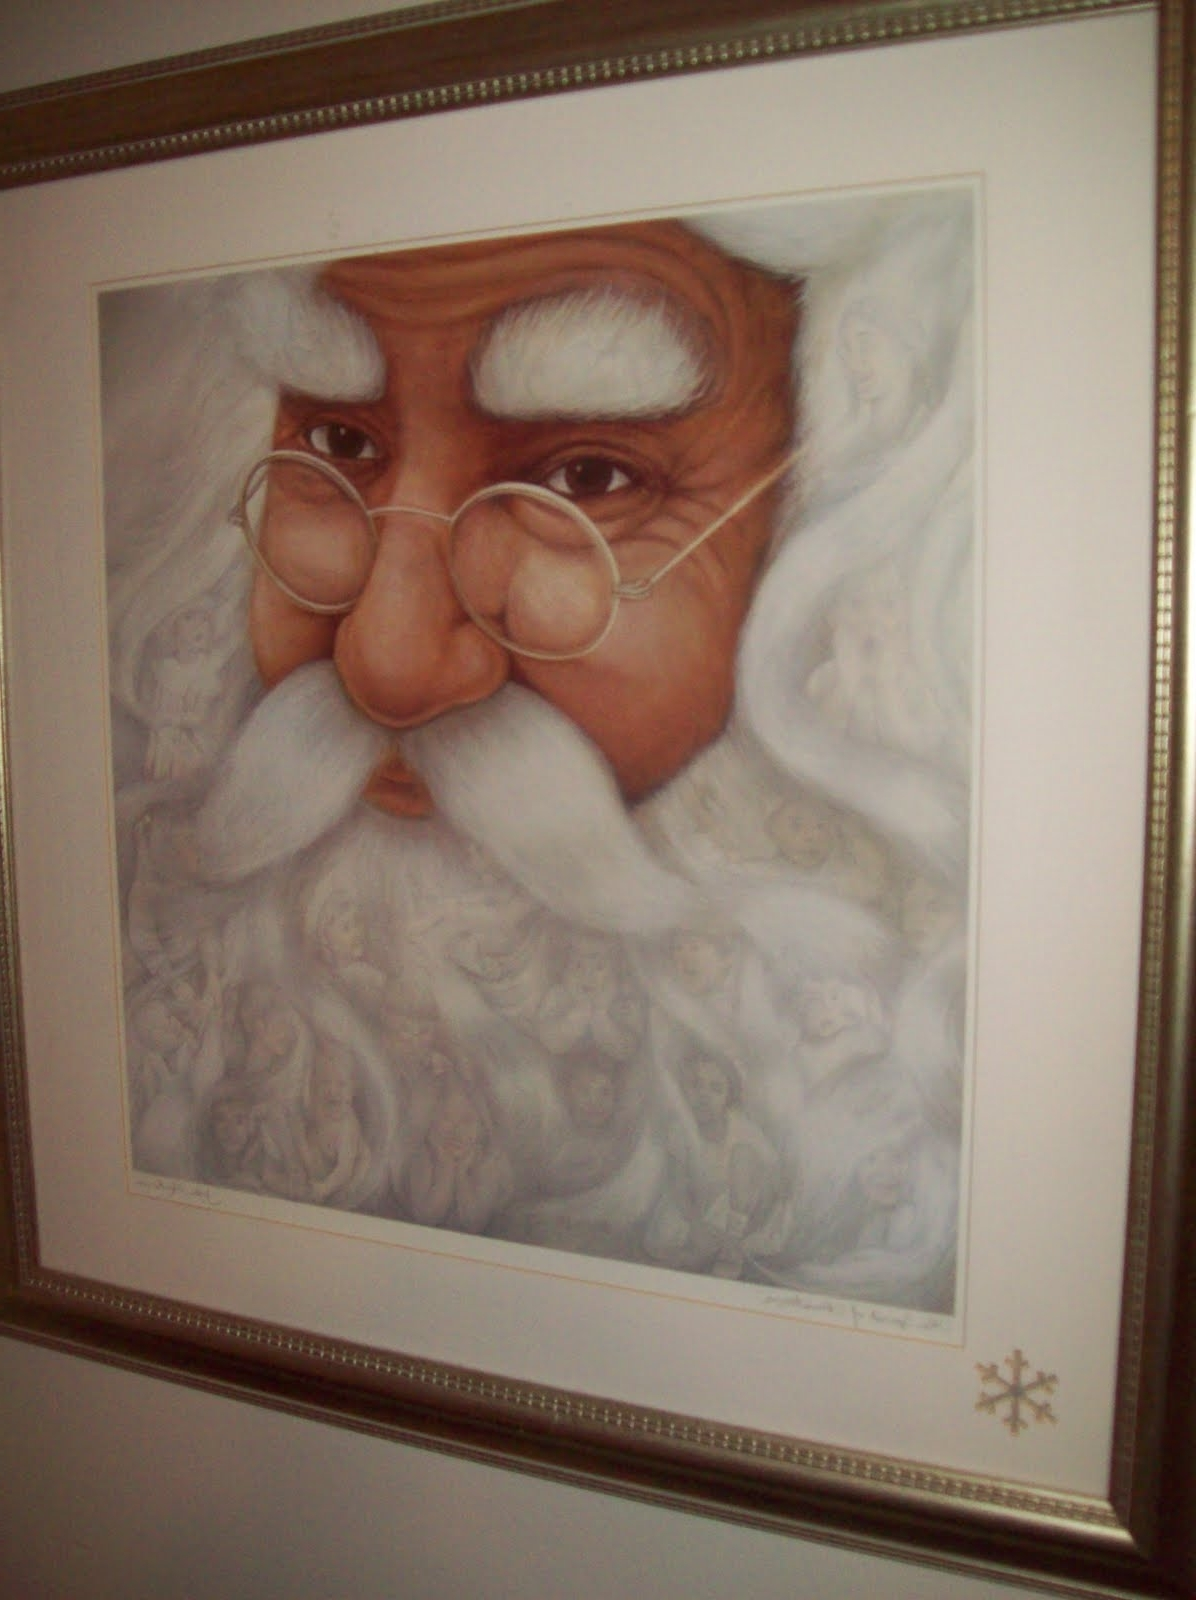 Christmas Framed Art Prints Pertaining To Fashionable Zanymayd: Gift From The Heart (View 15 of 15)